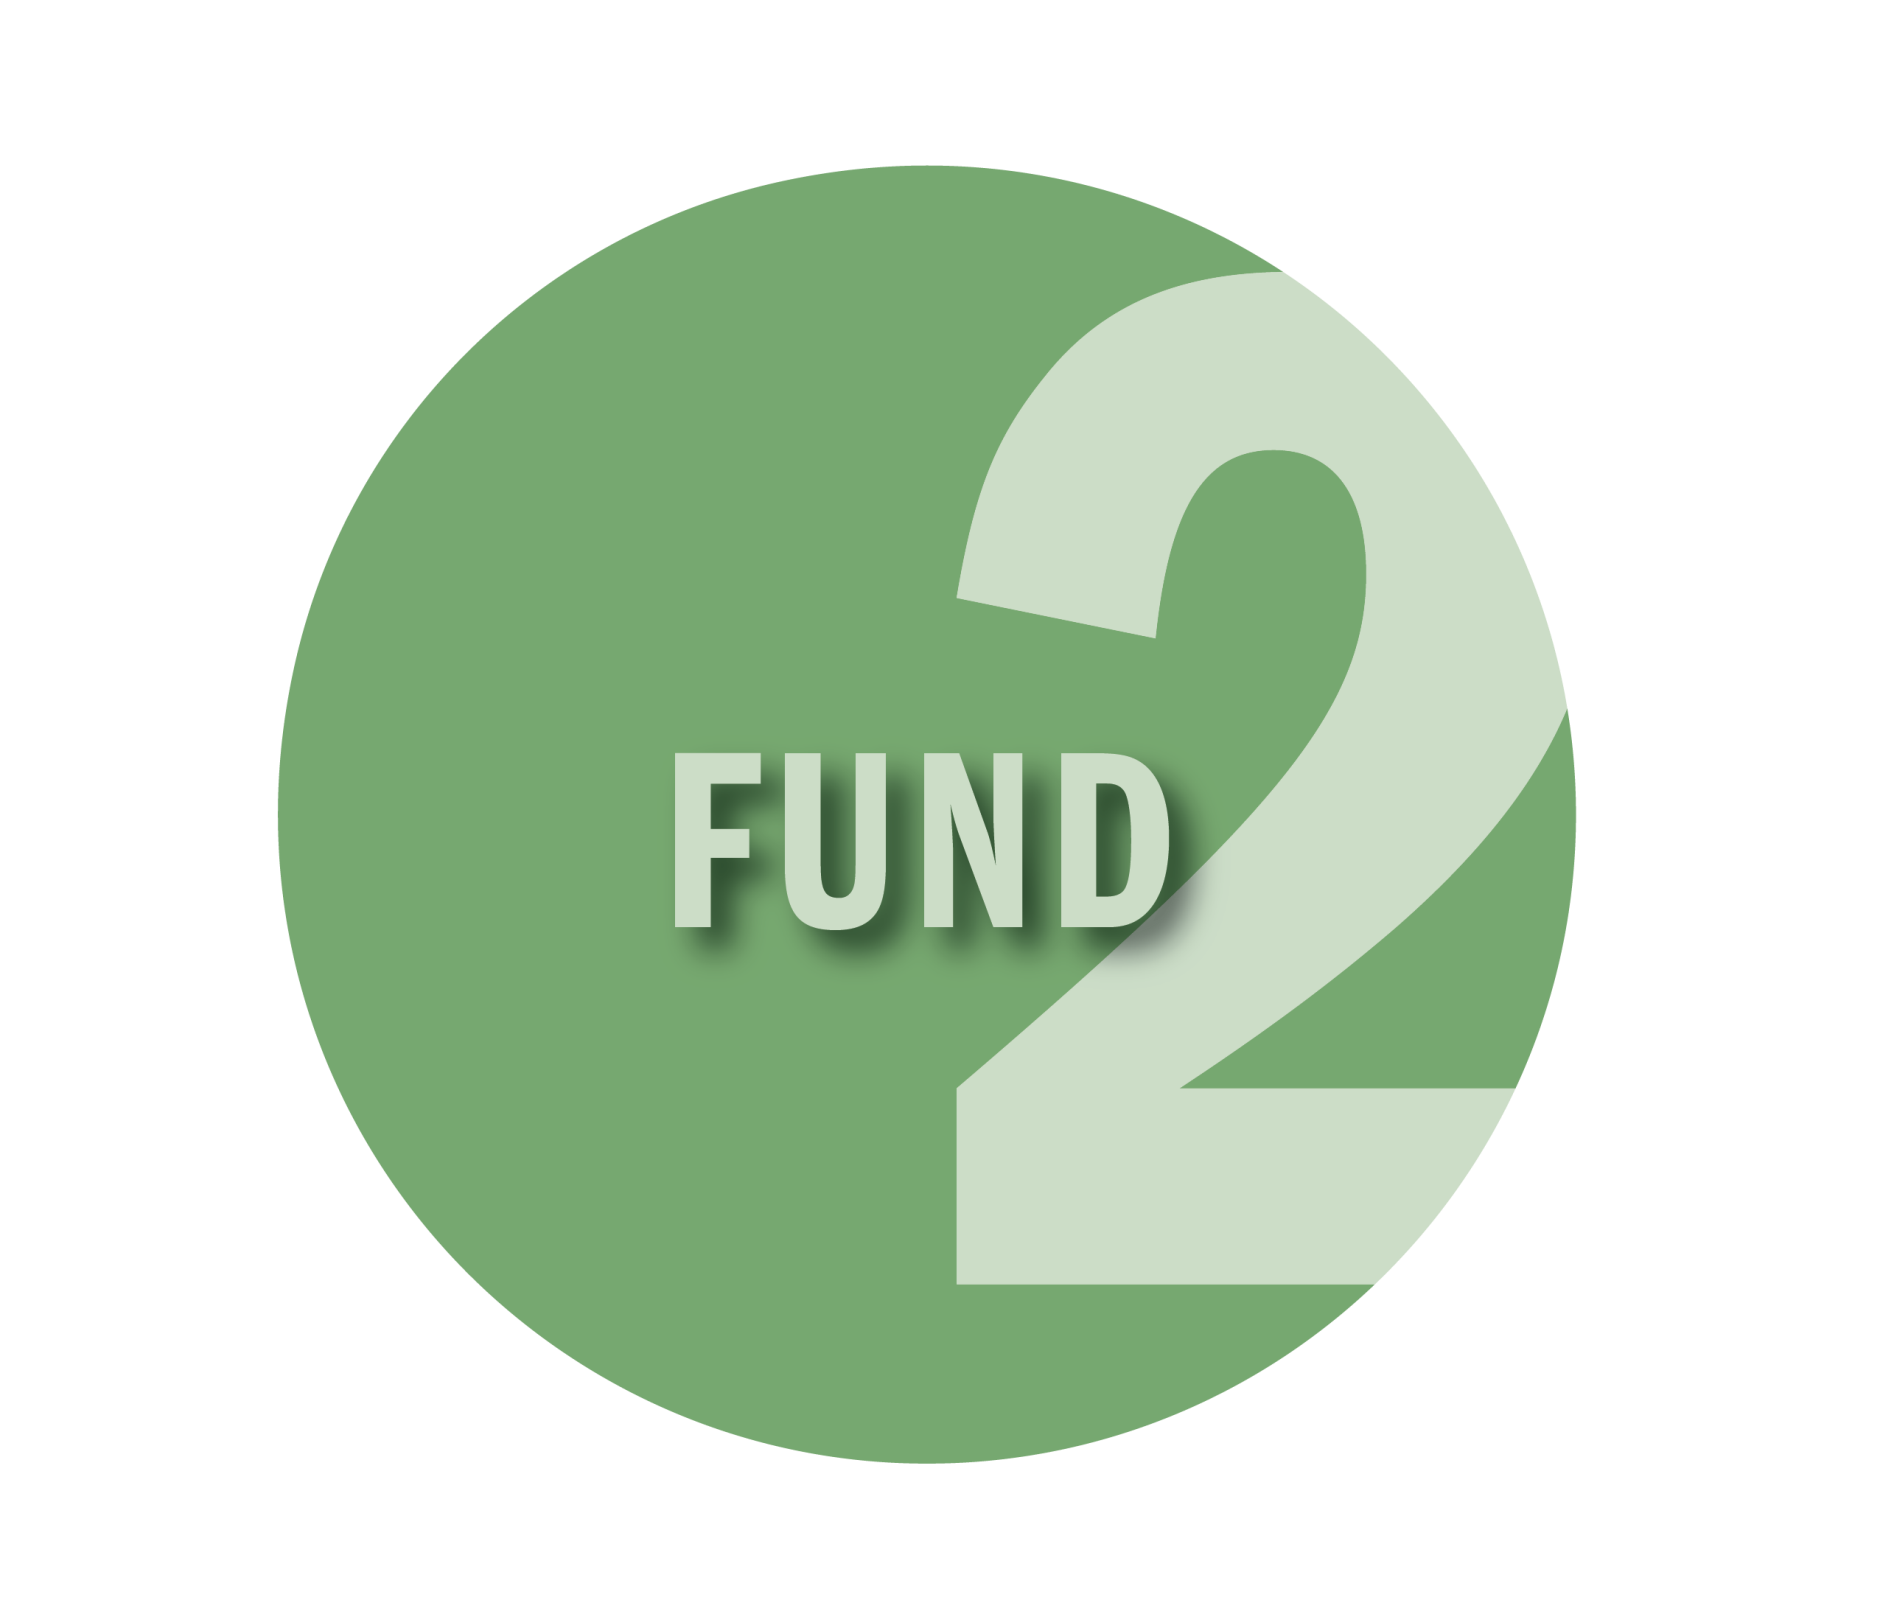 Fund & Invest Your Account